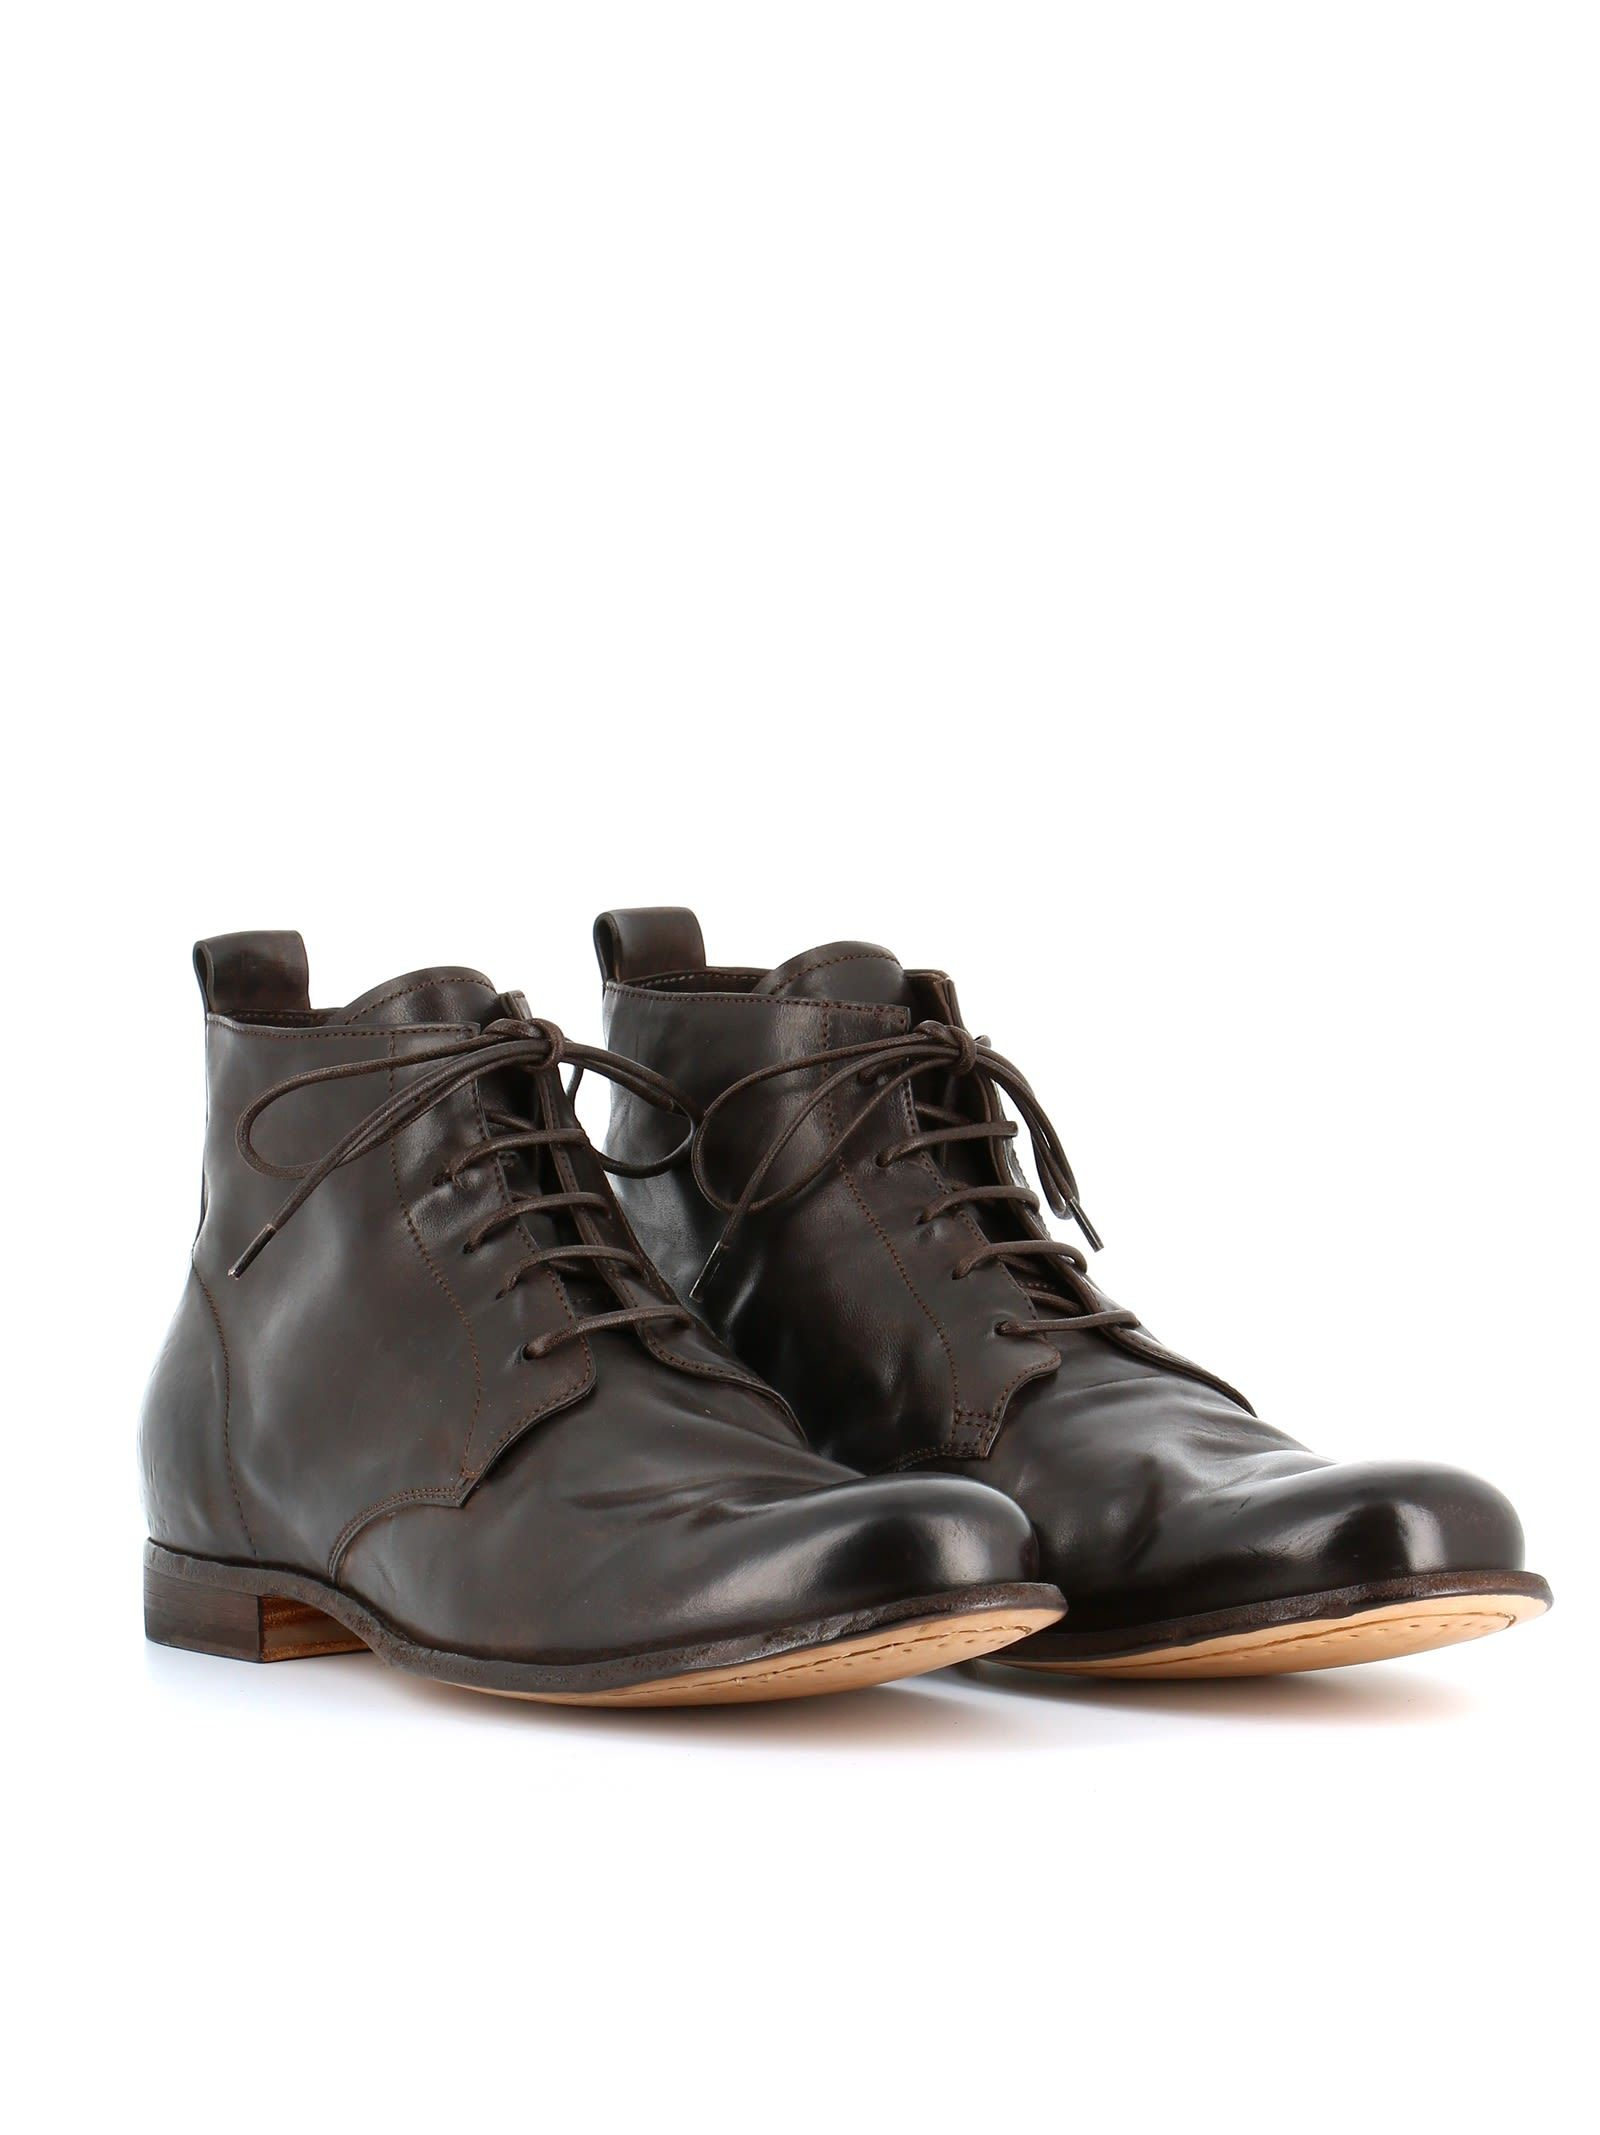 Chaussures - Bottes Officine Italia Créatives Pj23rxGACb